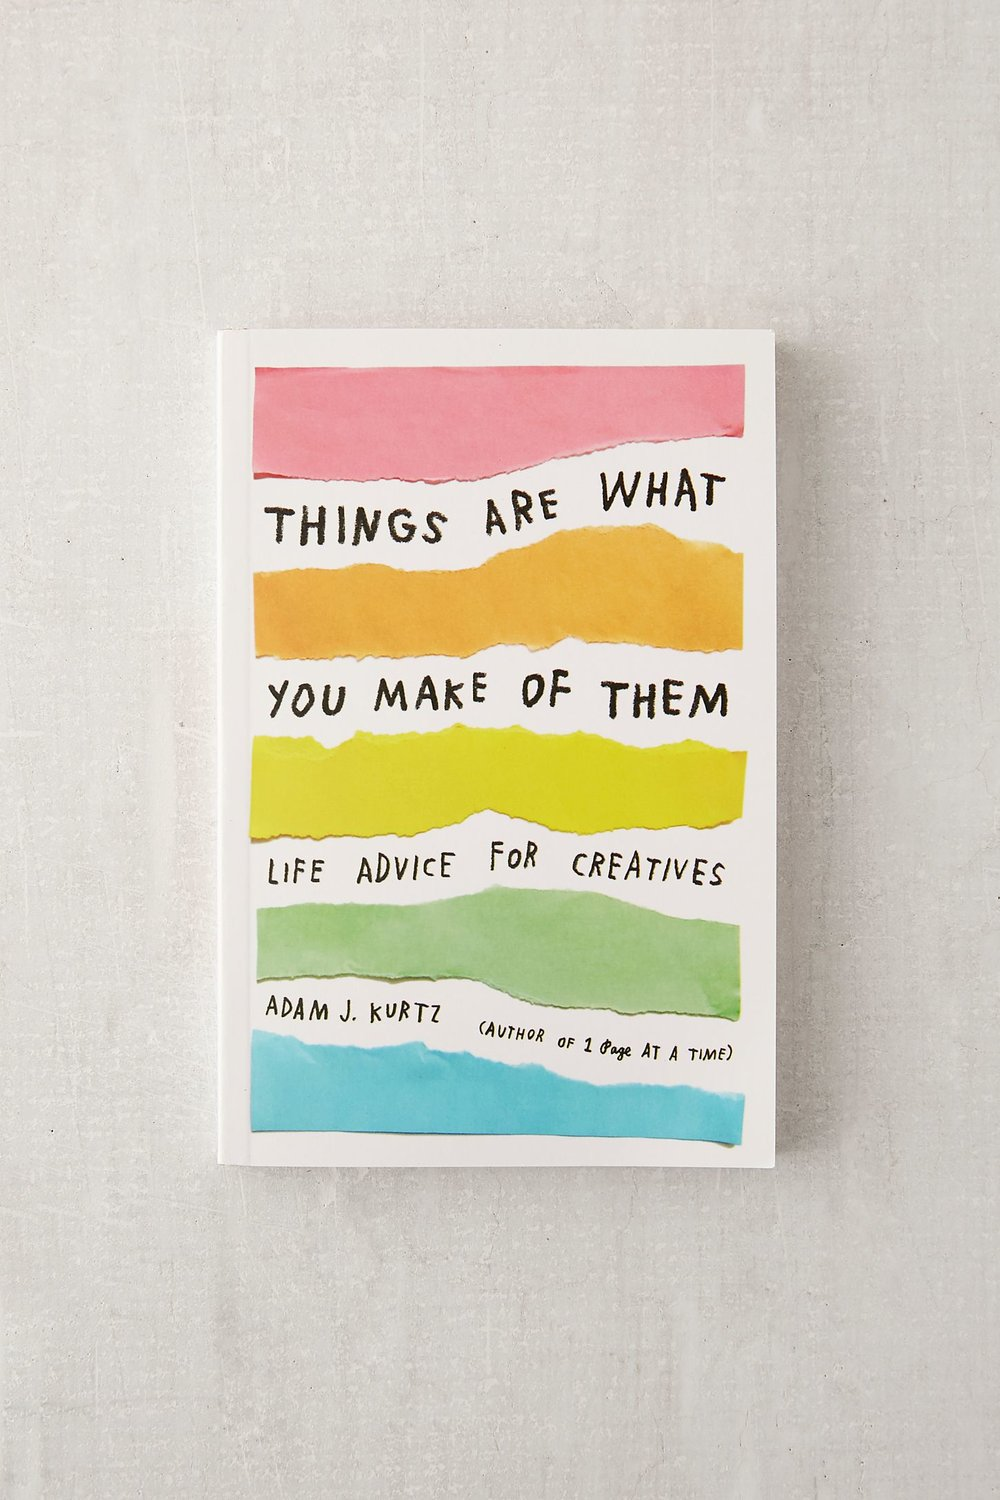 Things Are What You Make of Them, $11.79